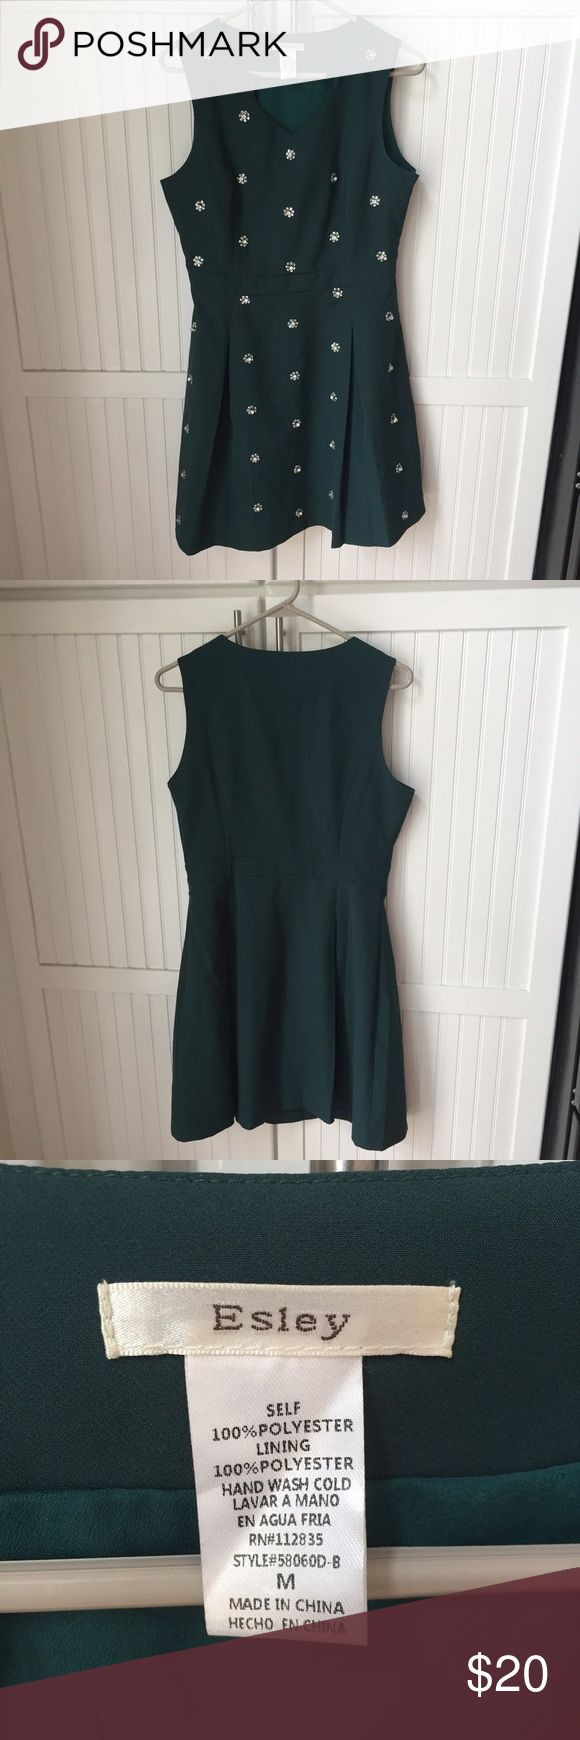 Modcloth Emerald gem skater dress Comfortable skater dress from Modcloth / only worn once! In brand new condition / feel free to ask questions or make an offer 😊 Modcloth Dresses